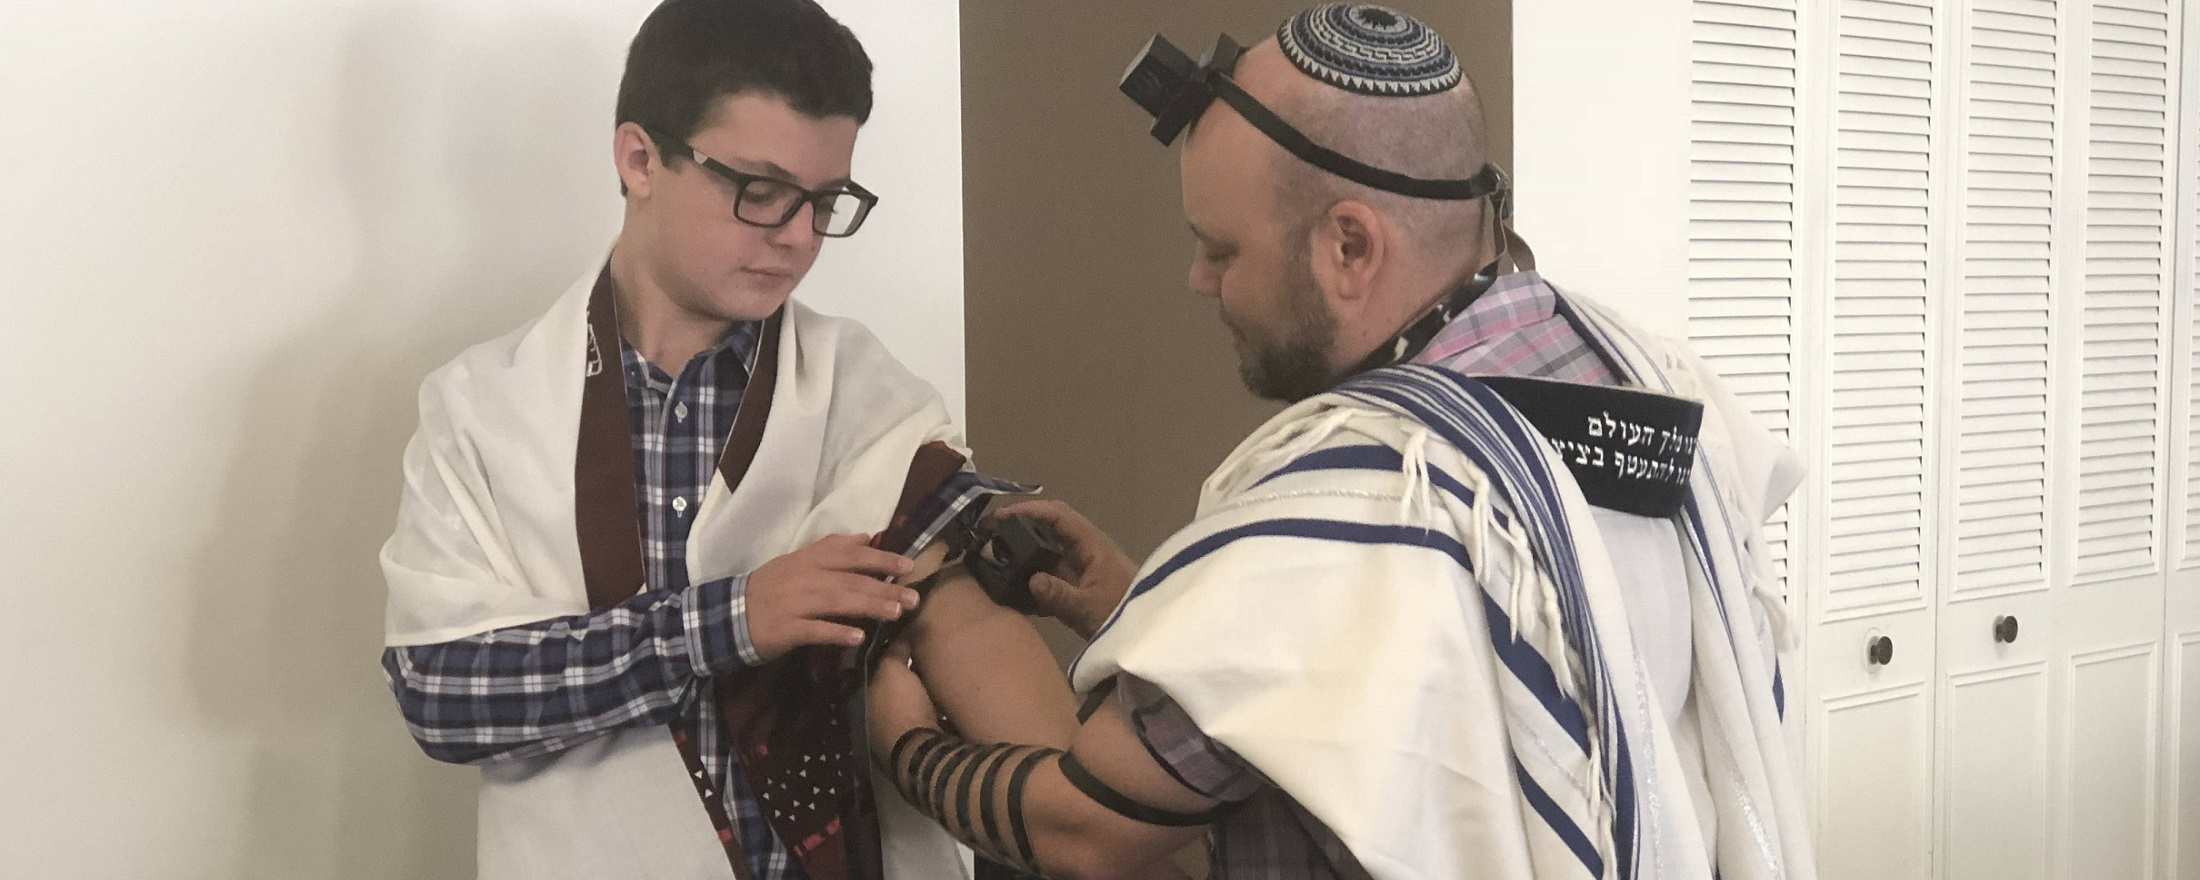 """<a href=""""https://www.shaareikodesh.org/rabbis-message"""""""">                                                                 <span class=""""slider_title"""">                                     Life Cycle                                </span>                                                                 </a>                                                                                                                                                                                       <span class=""""slider_description"""">A Student Learns How to Lay Tefilin as He Becomes Bar Mitzvah</span>                                                                                     <a href=""""https://www.shaareikodesh.org/rabbis-message"""" class=""""slider_link"""">Our Rabbi</a>"""